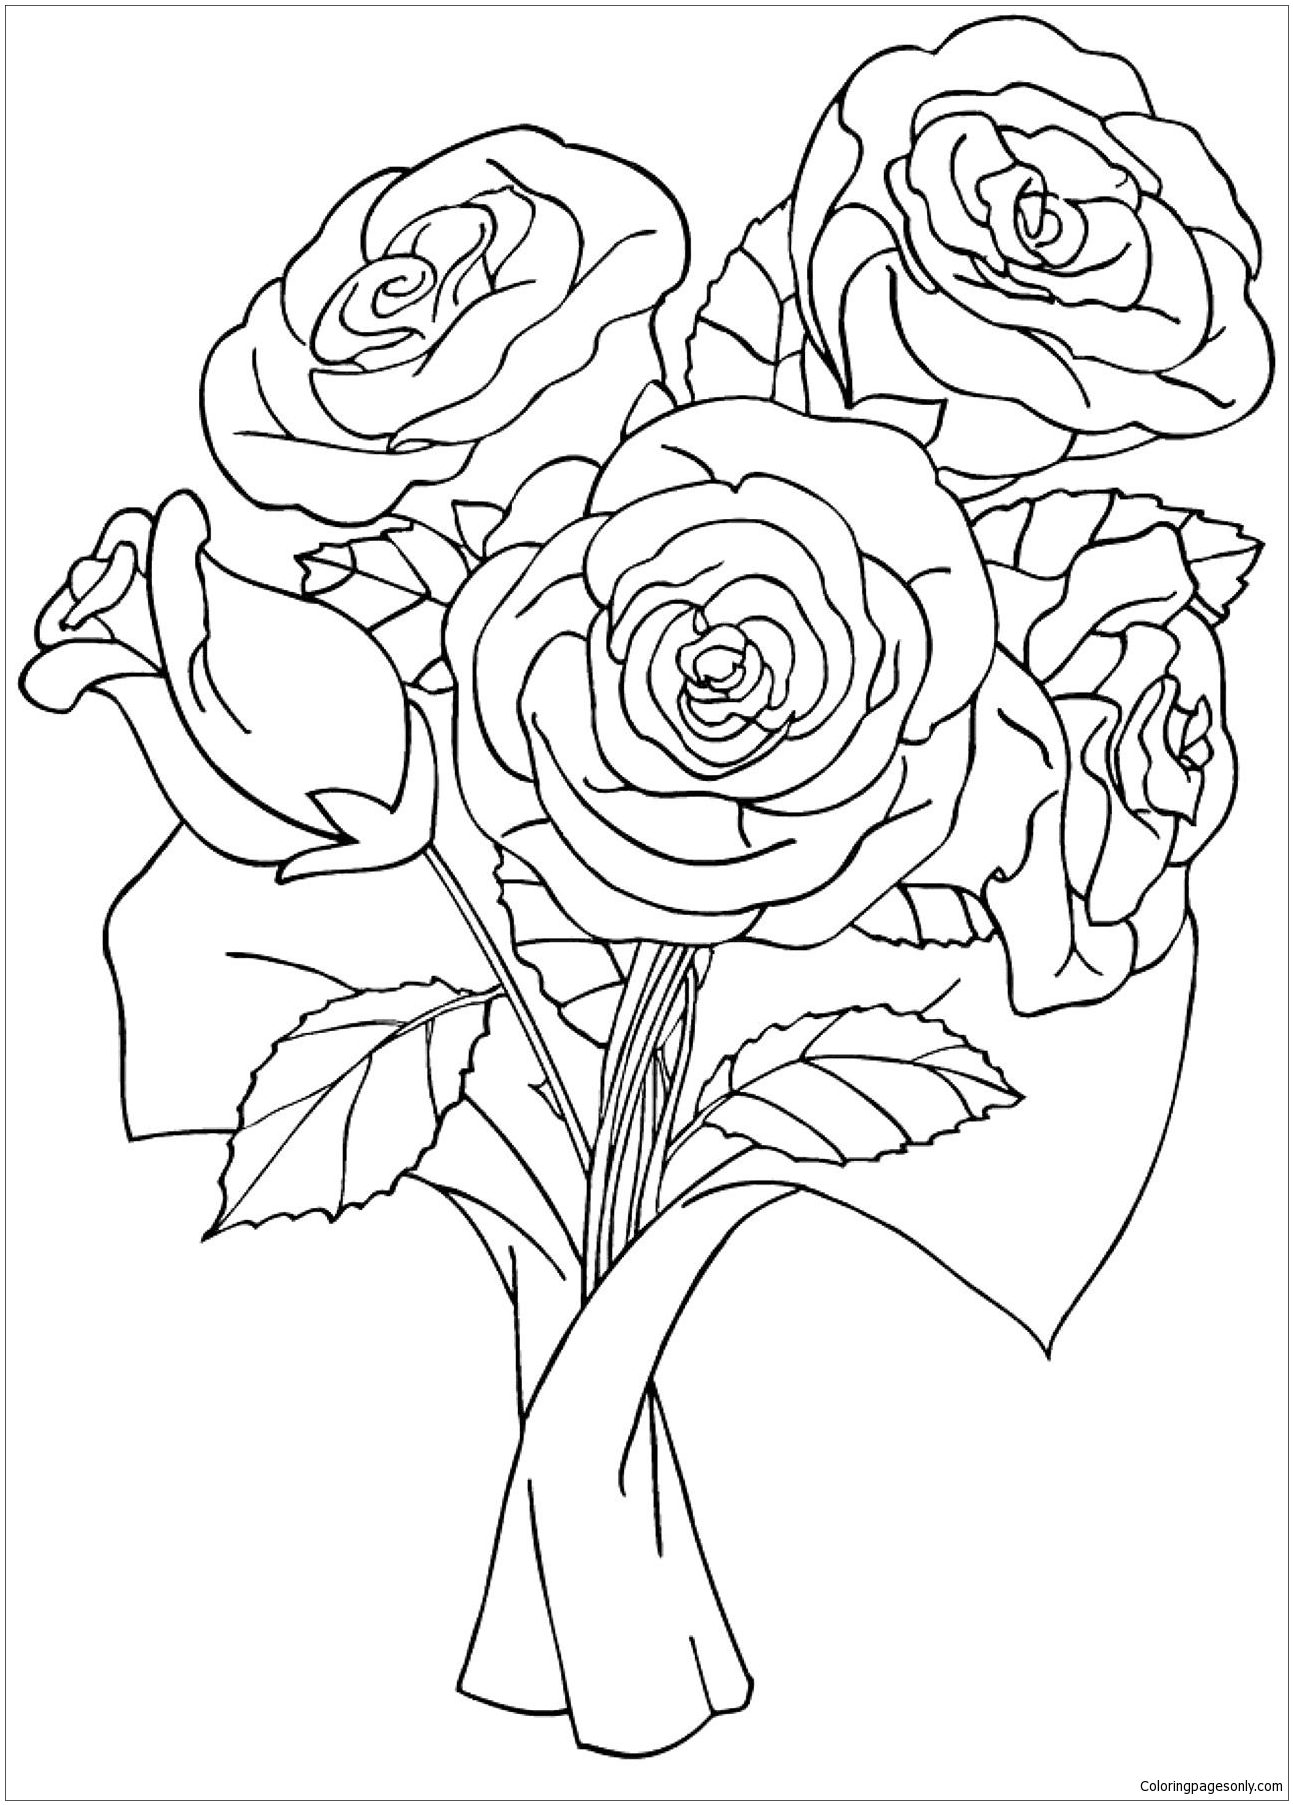 roses coloring pages printable get this printable roses coloring pages for adults online roses pages printable coloring